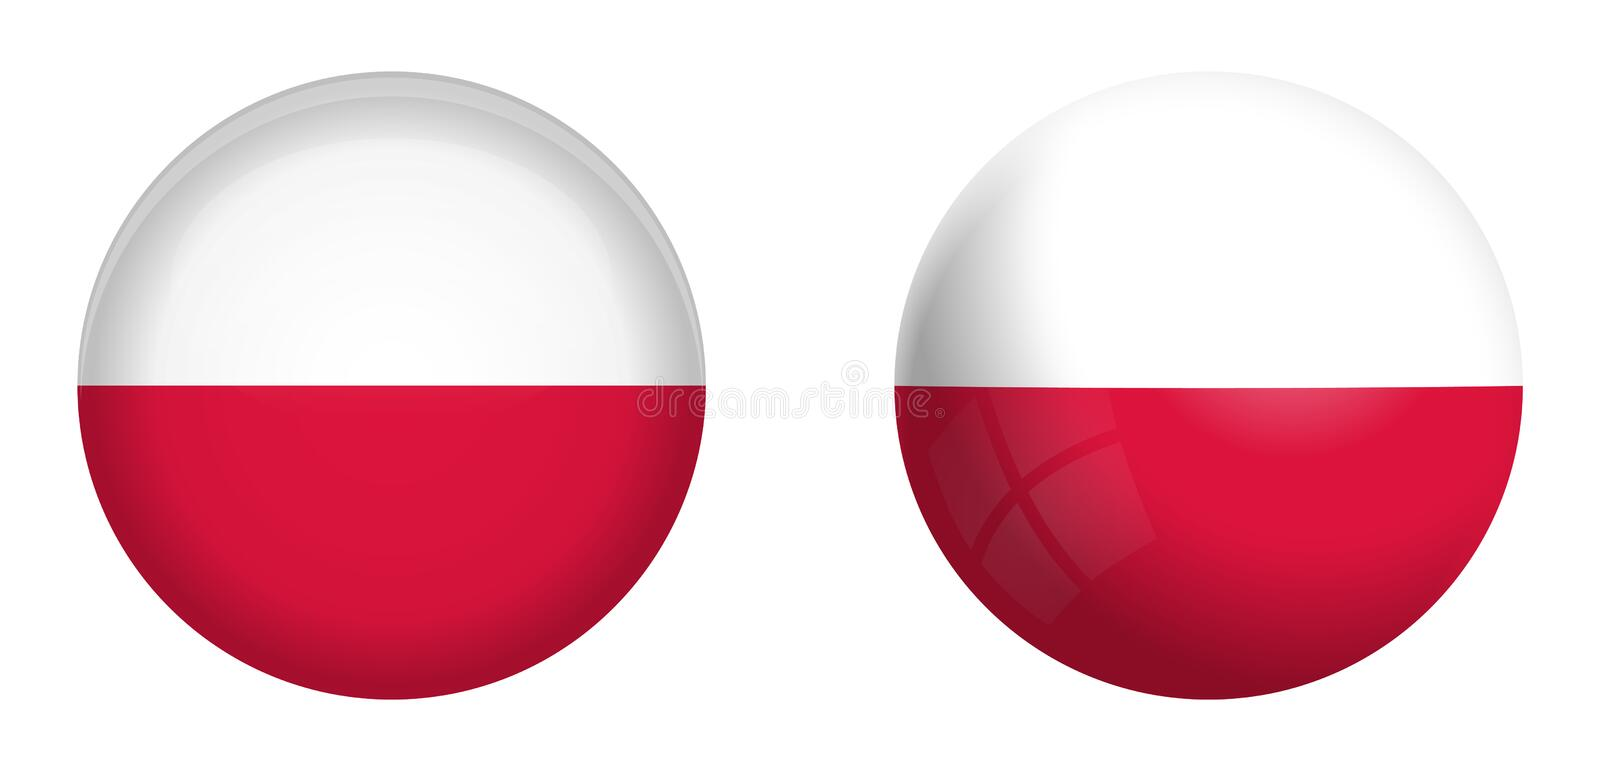 Poland flag under 3d dome button and on glossy sphere / ball vector illustration